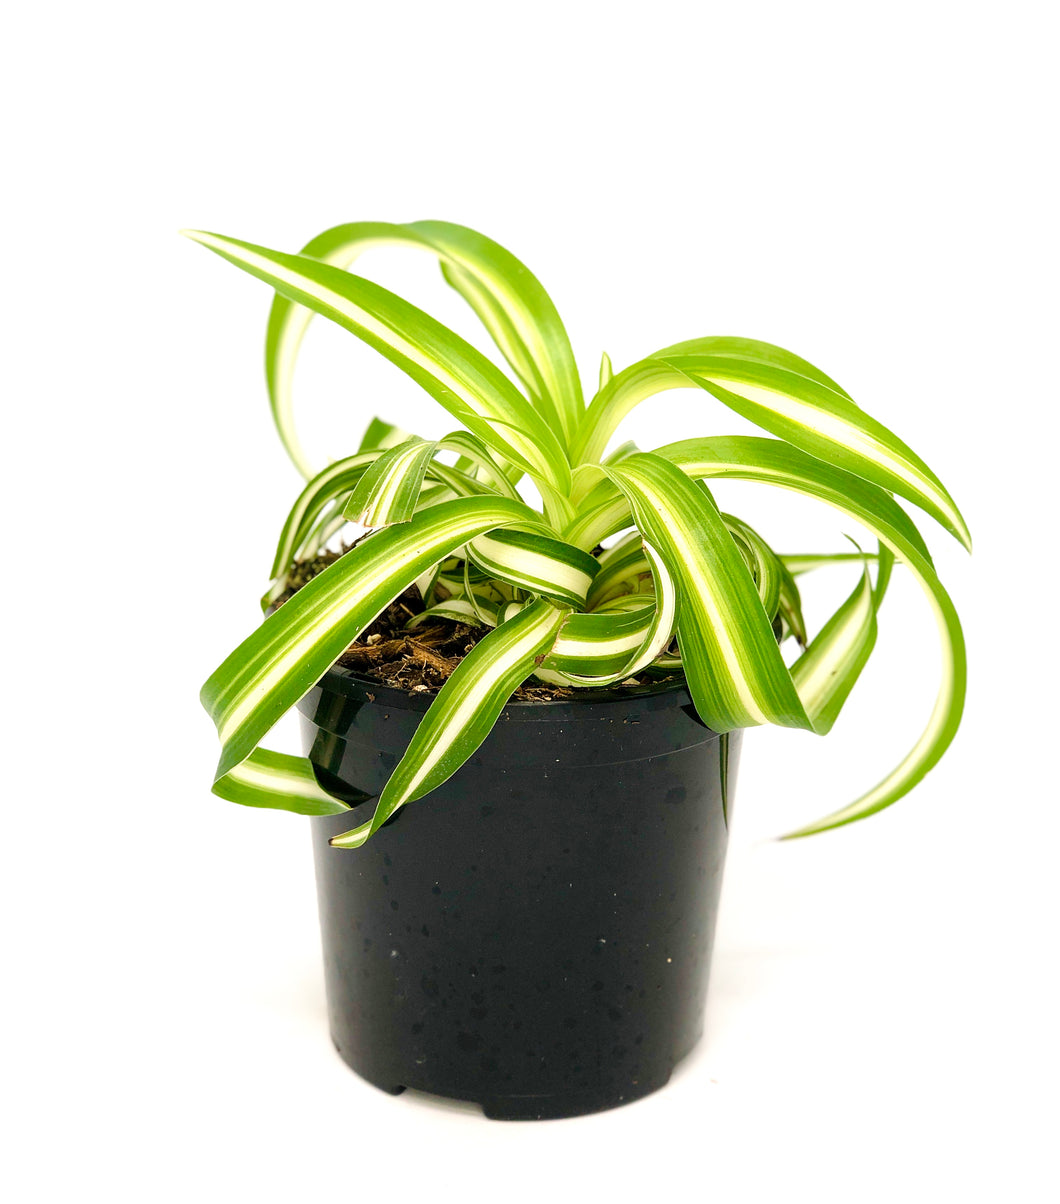 Curly spider plant- Chlorophytum comosum 'Bonnie' 105mm pot